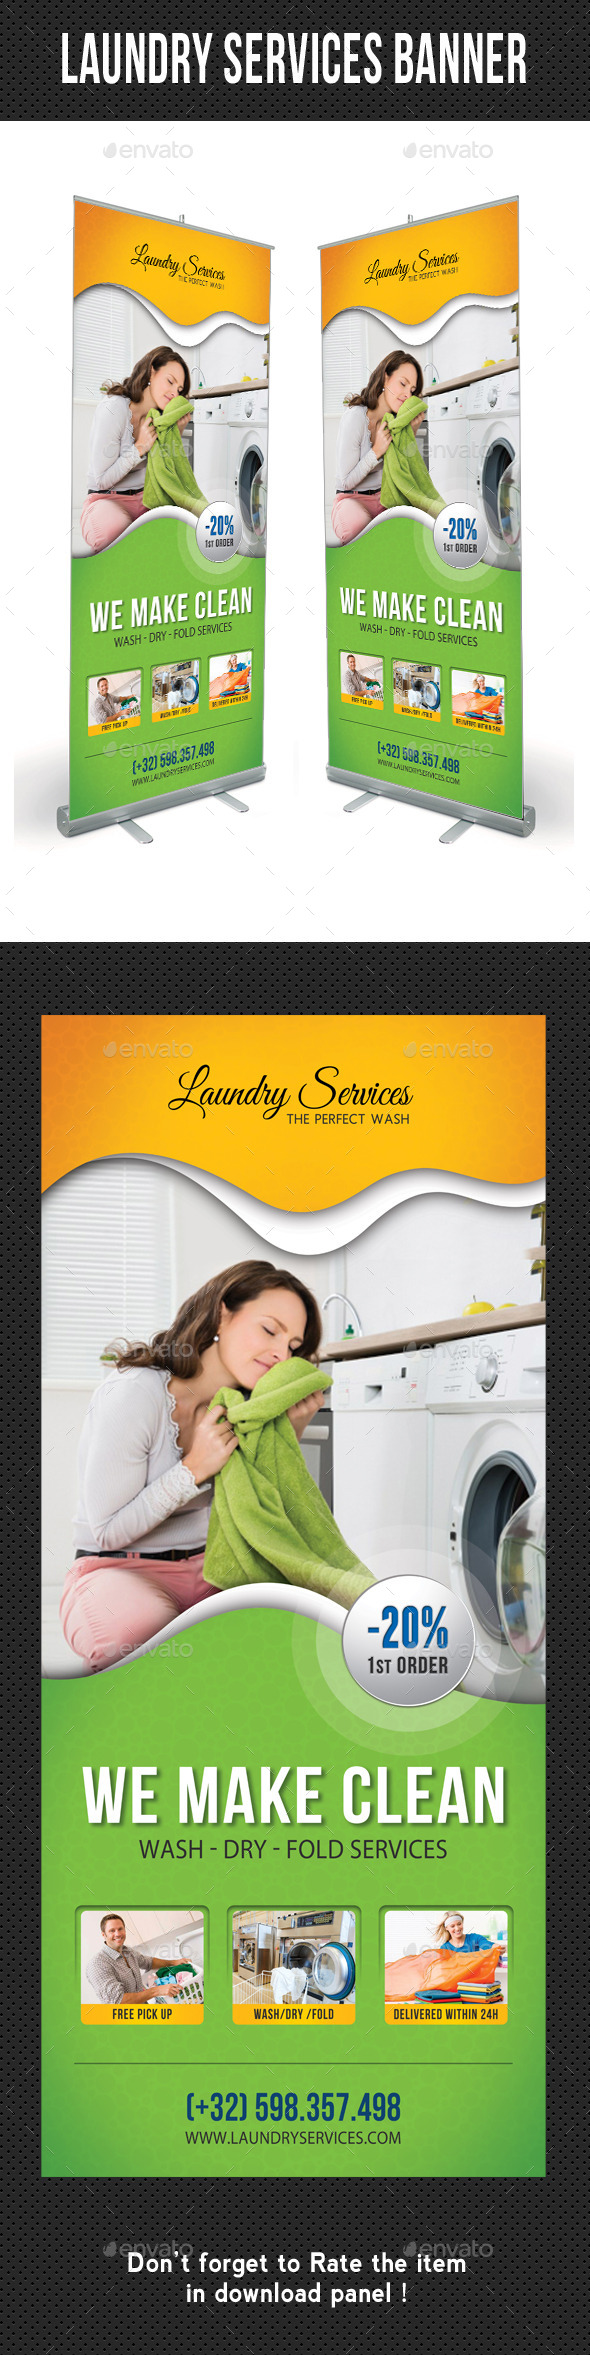 Laundry Services Banner Template - Signage Print Templates